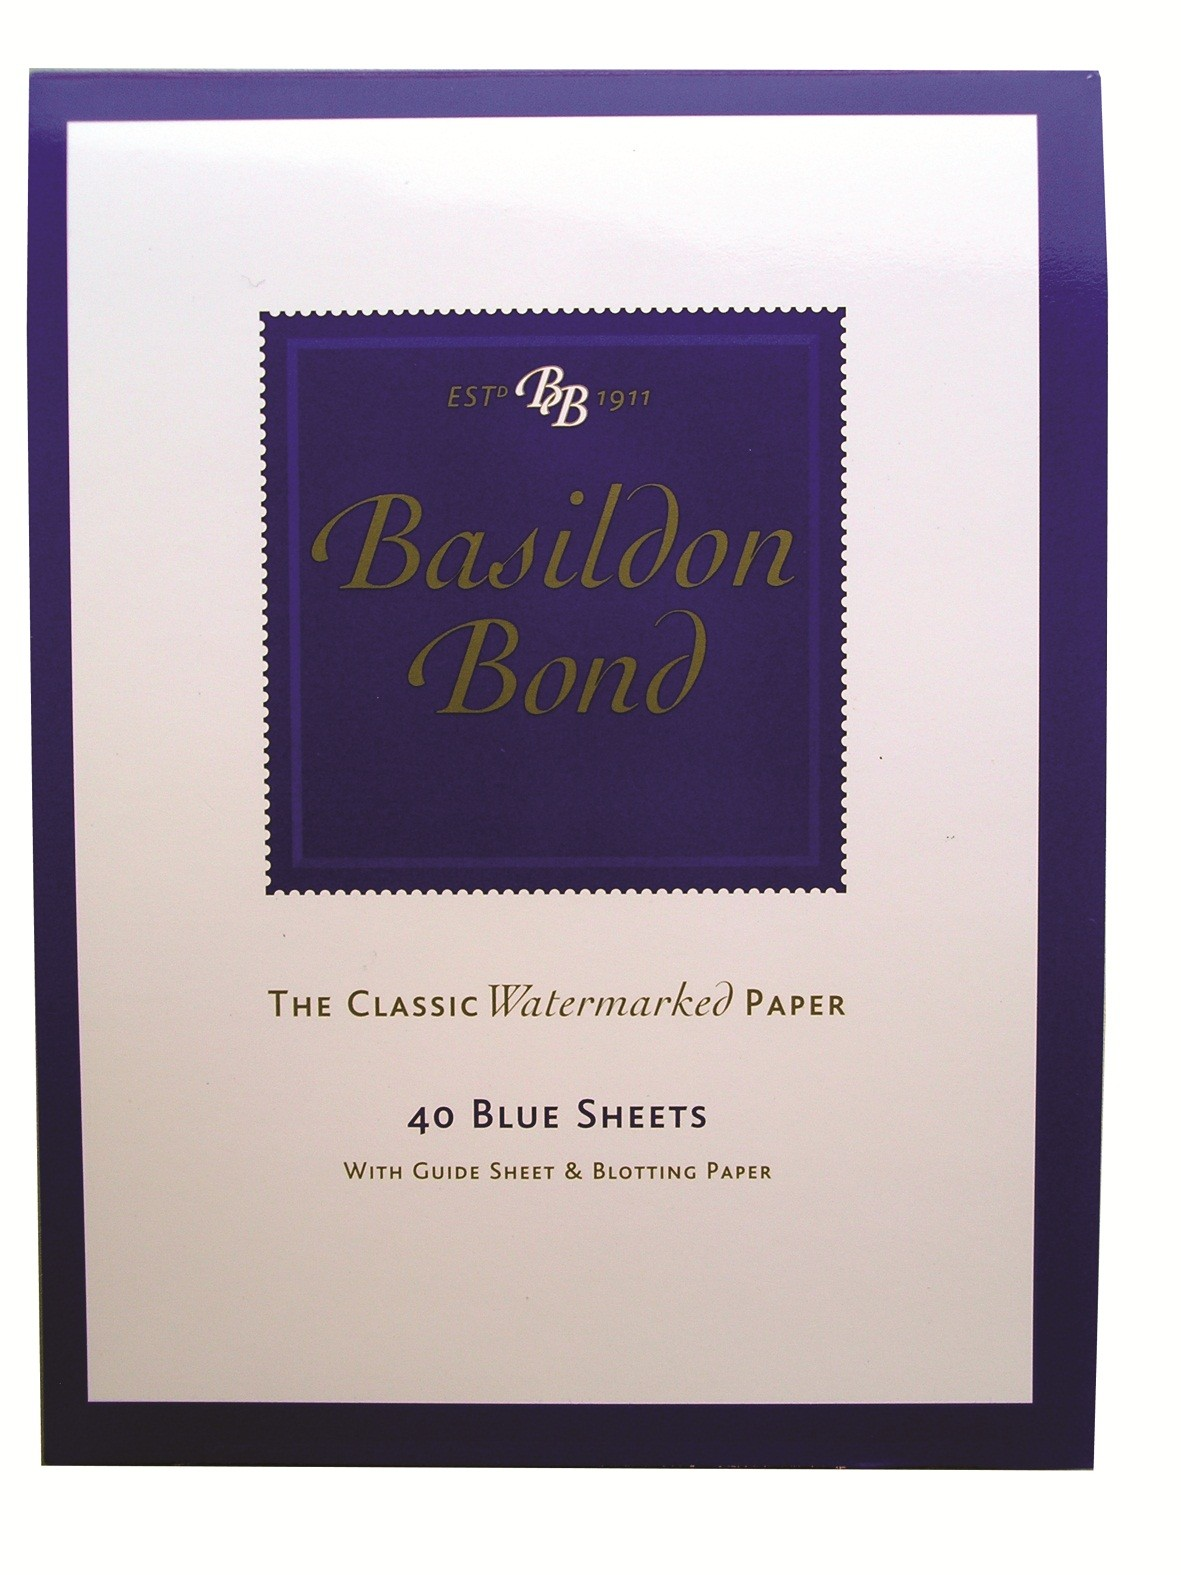 basildon bond writing paper Basildon bond writing paper for sale: basildon bond writing paper & envelopes set champagne duke size top bound: 645 £ | basildon bond writing paper & envelo.